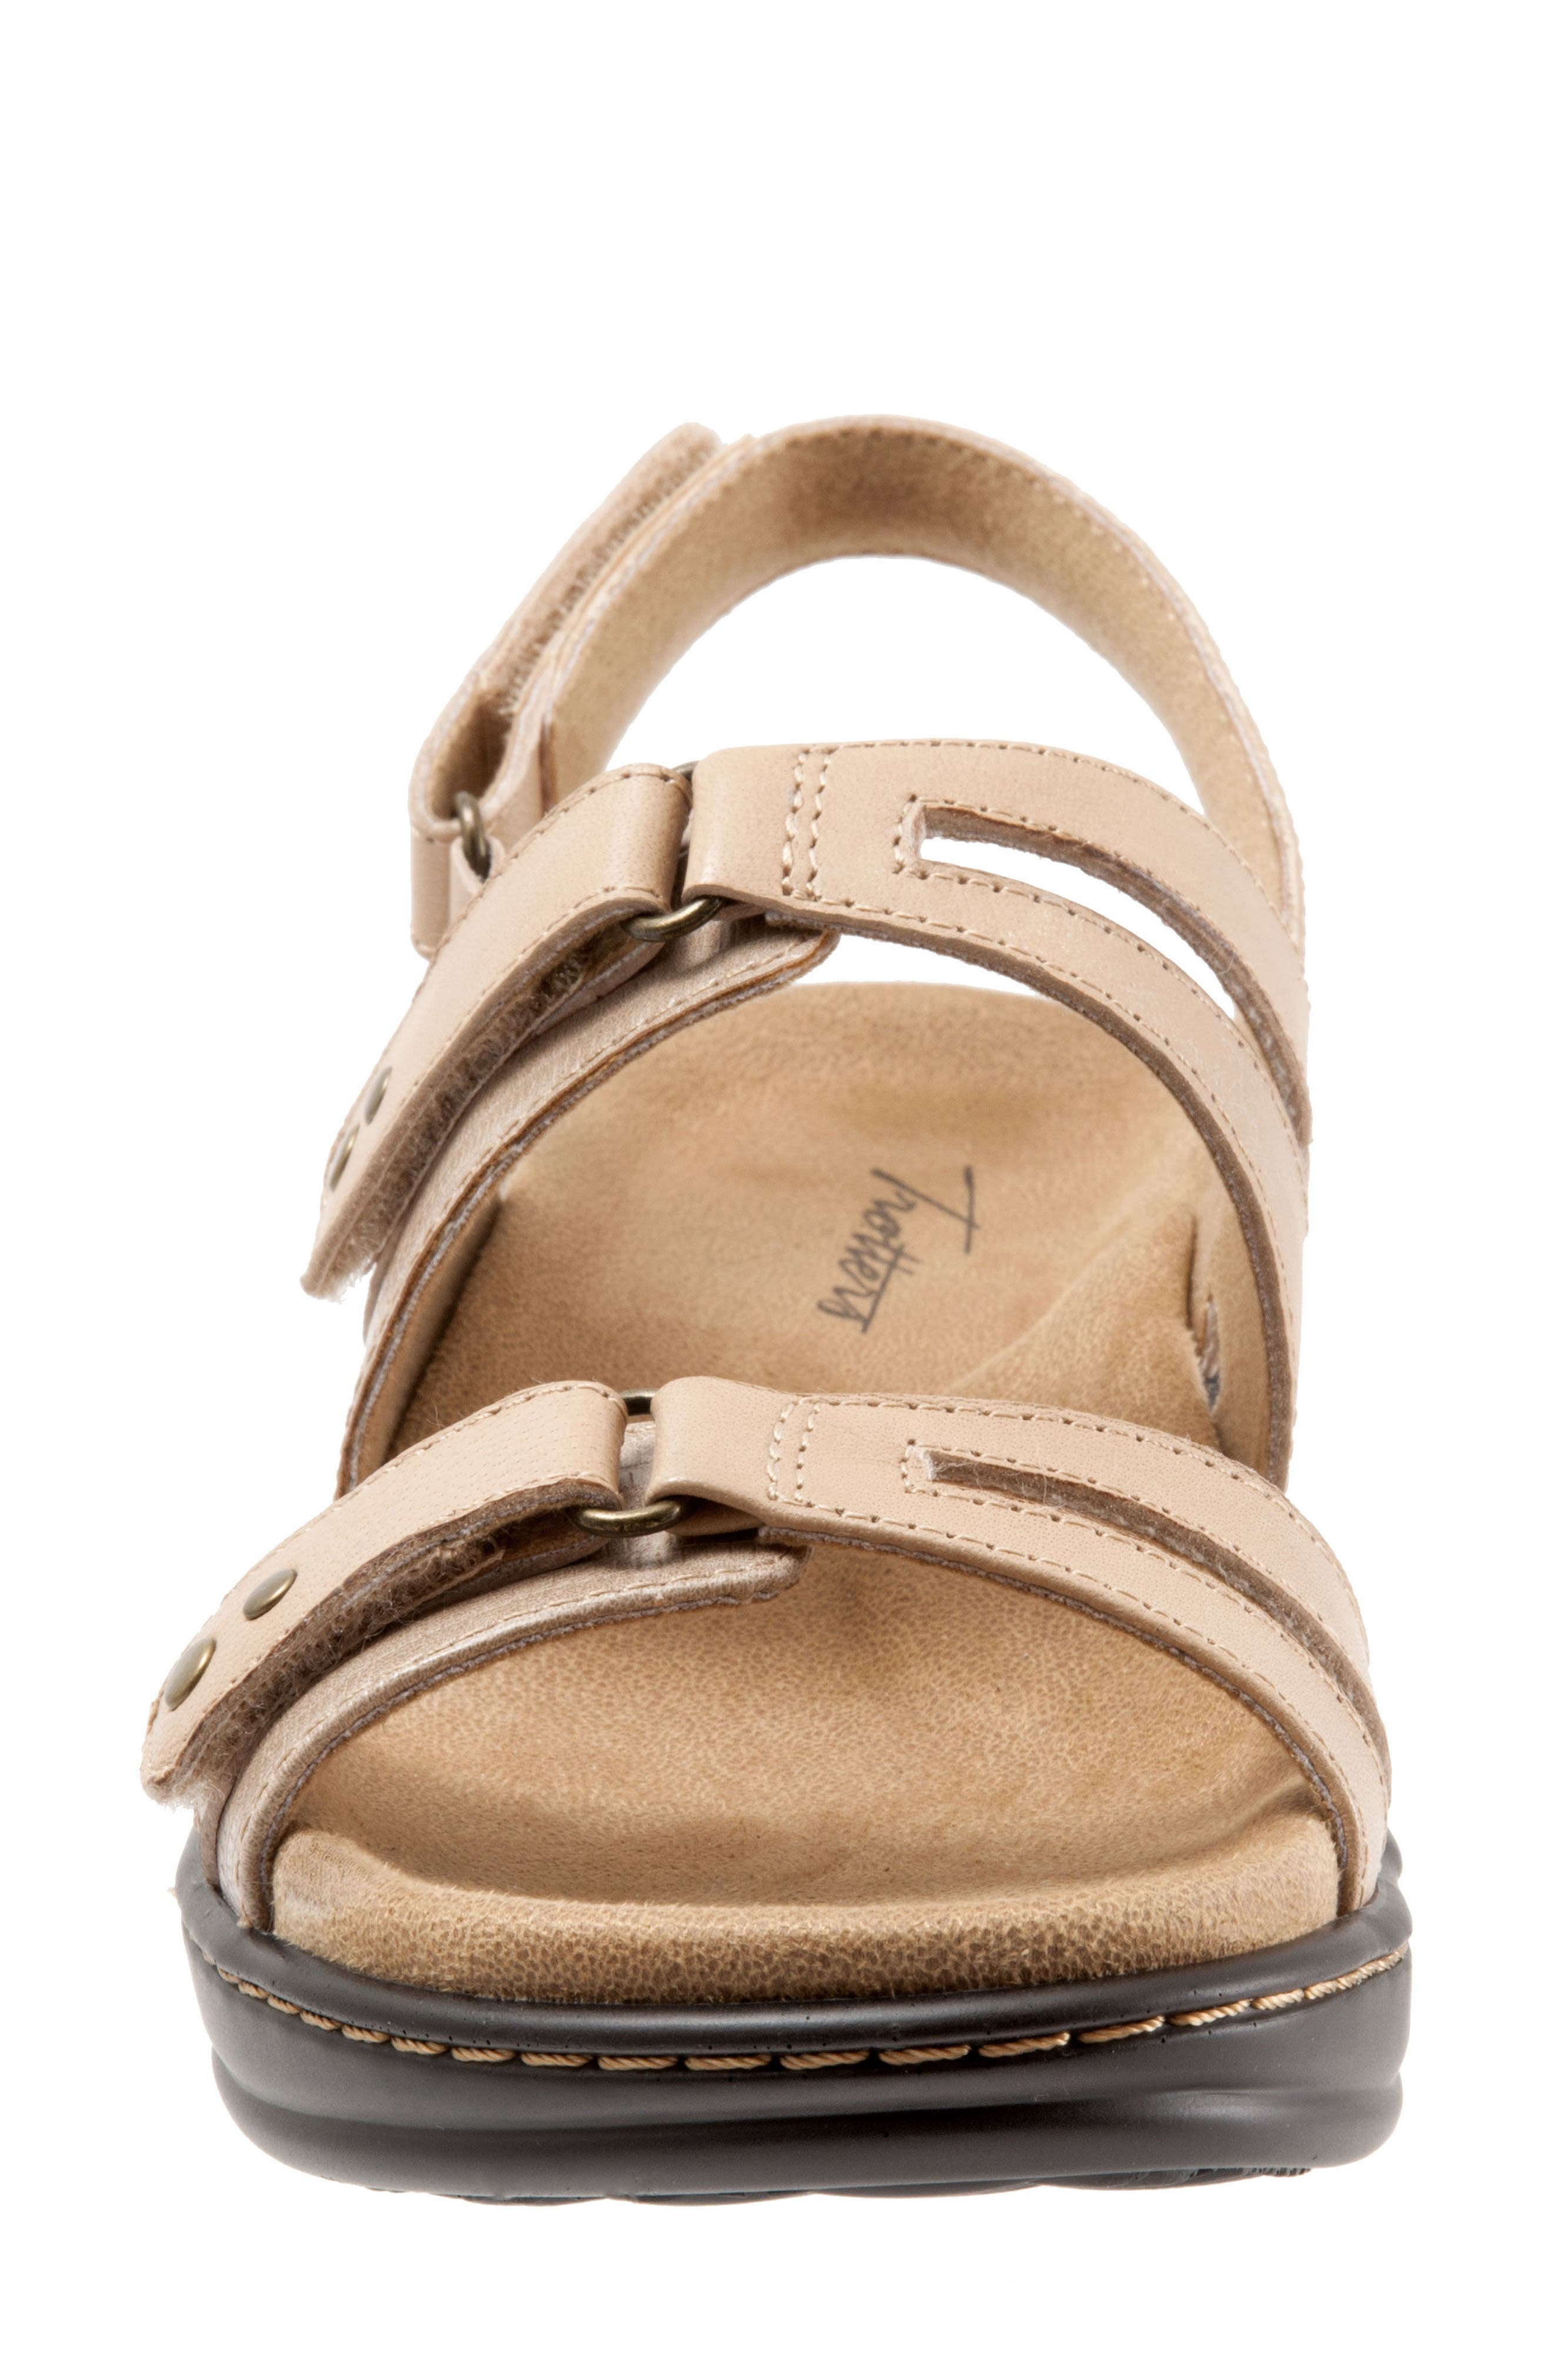 Newton Sandal,                             Alternate thumbnail 4, color,                             Beige/ Off White Leather